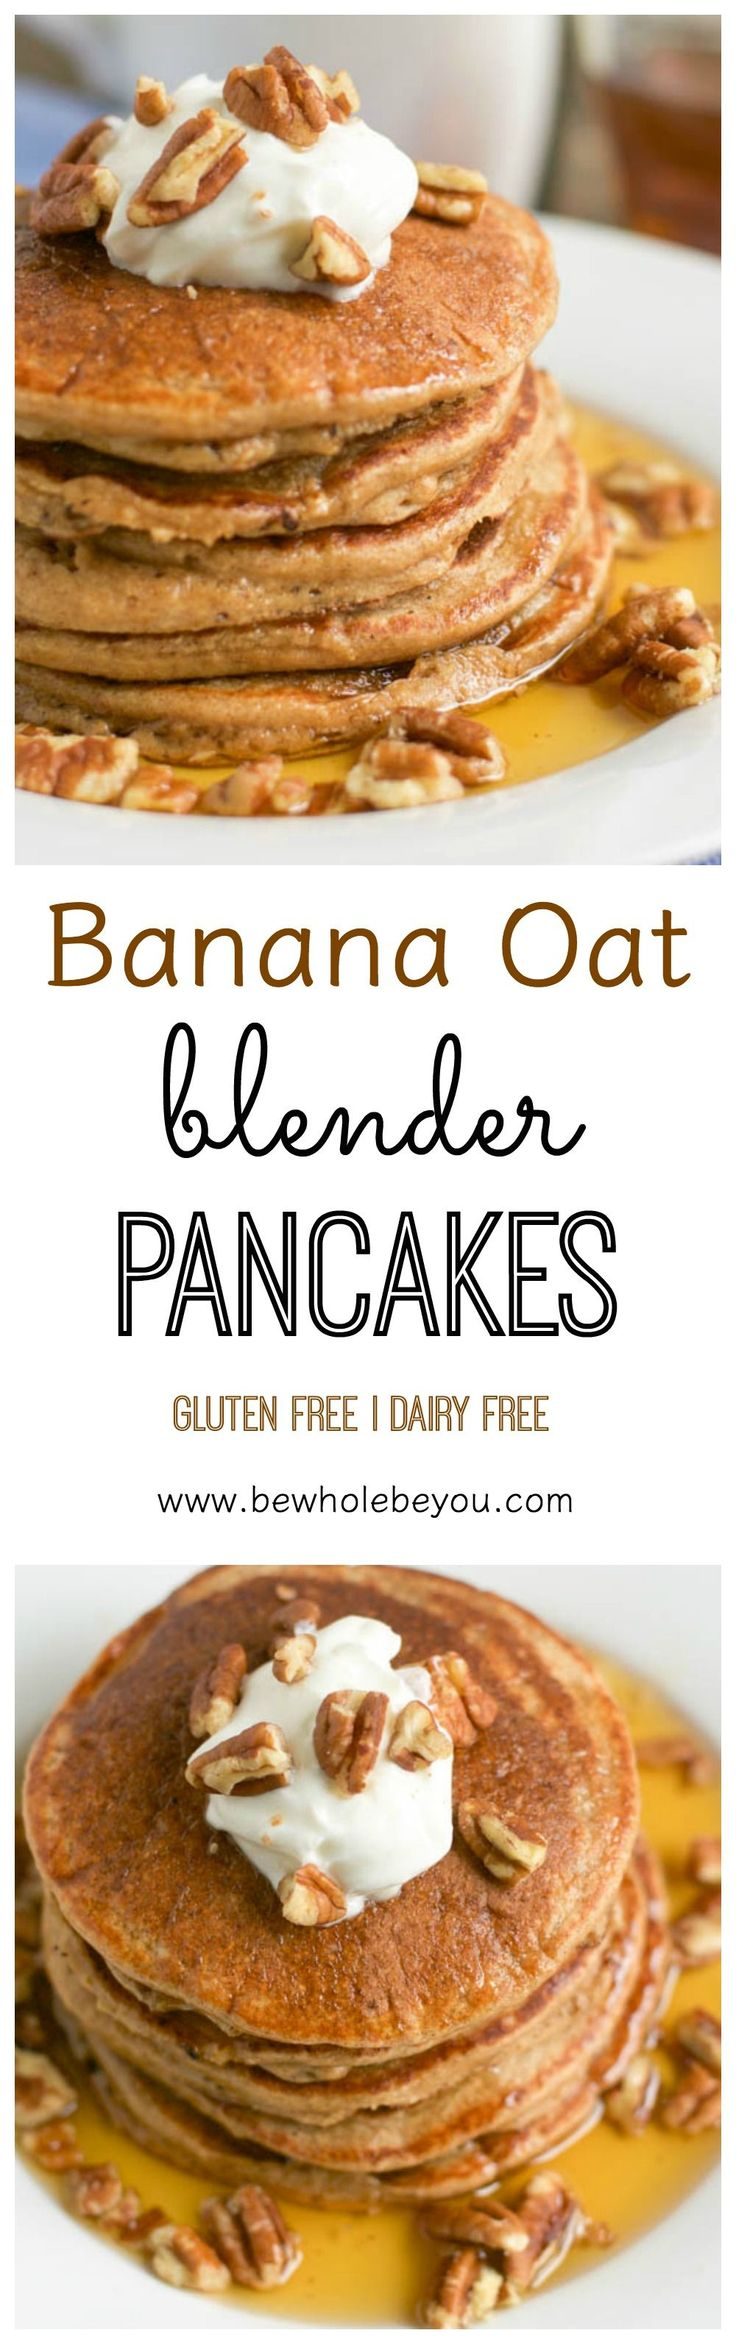 Banana Oat Blender Pancakes. Be Whole. Be You. -  Make sure to use gluten free oats to make gluten free